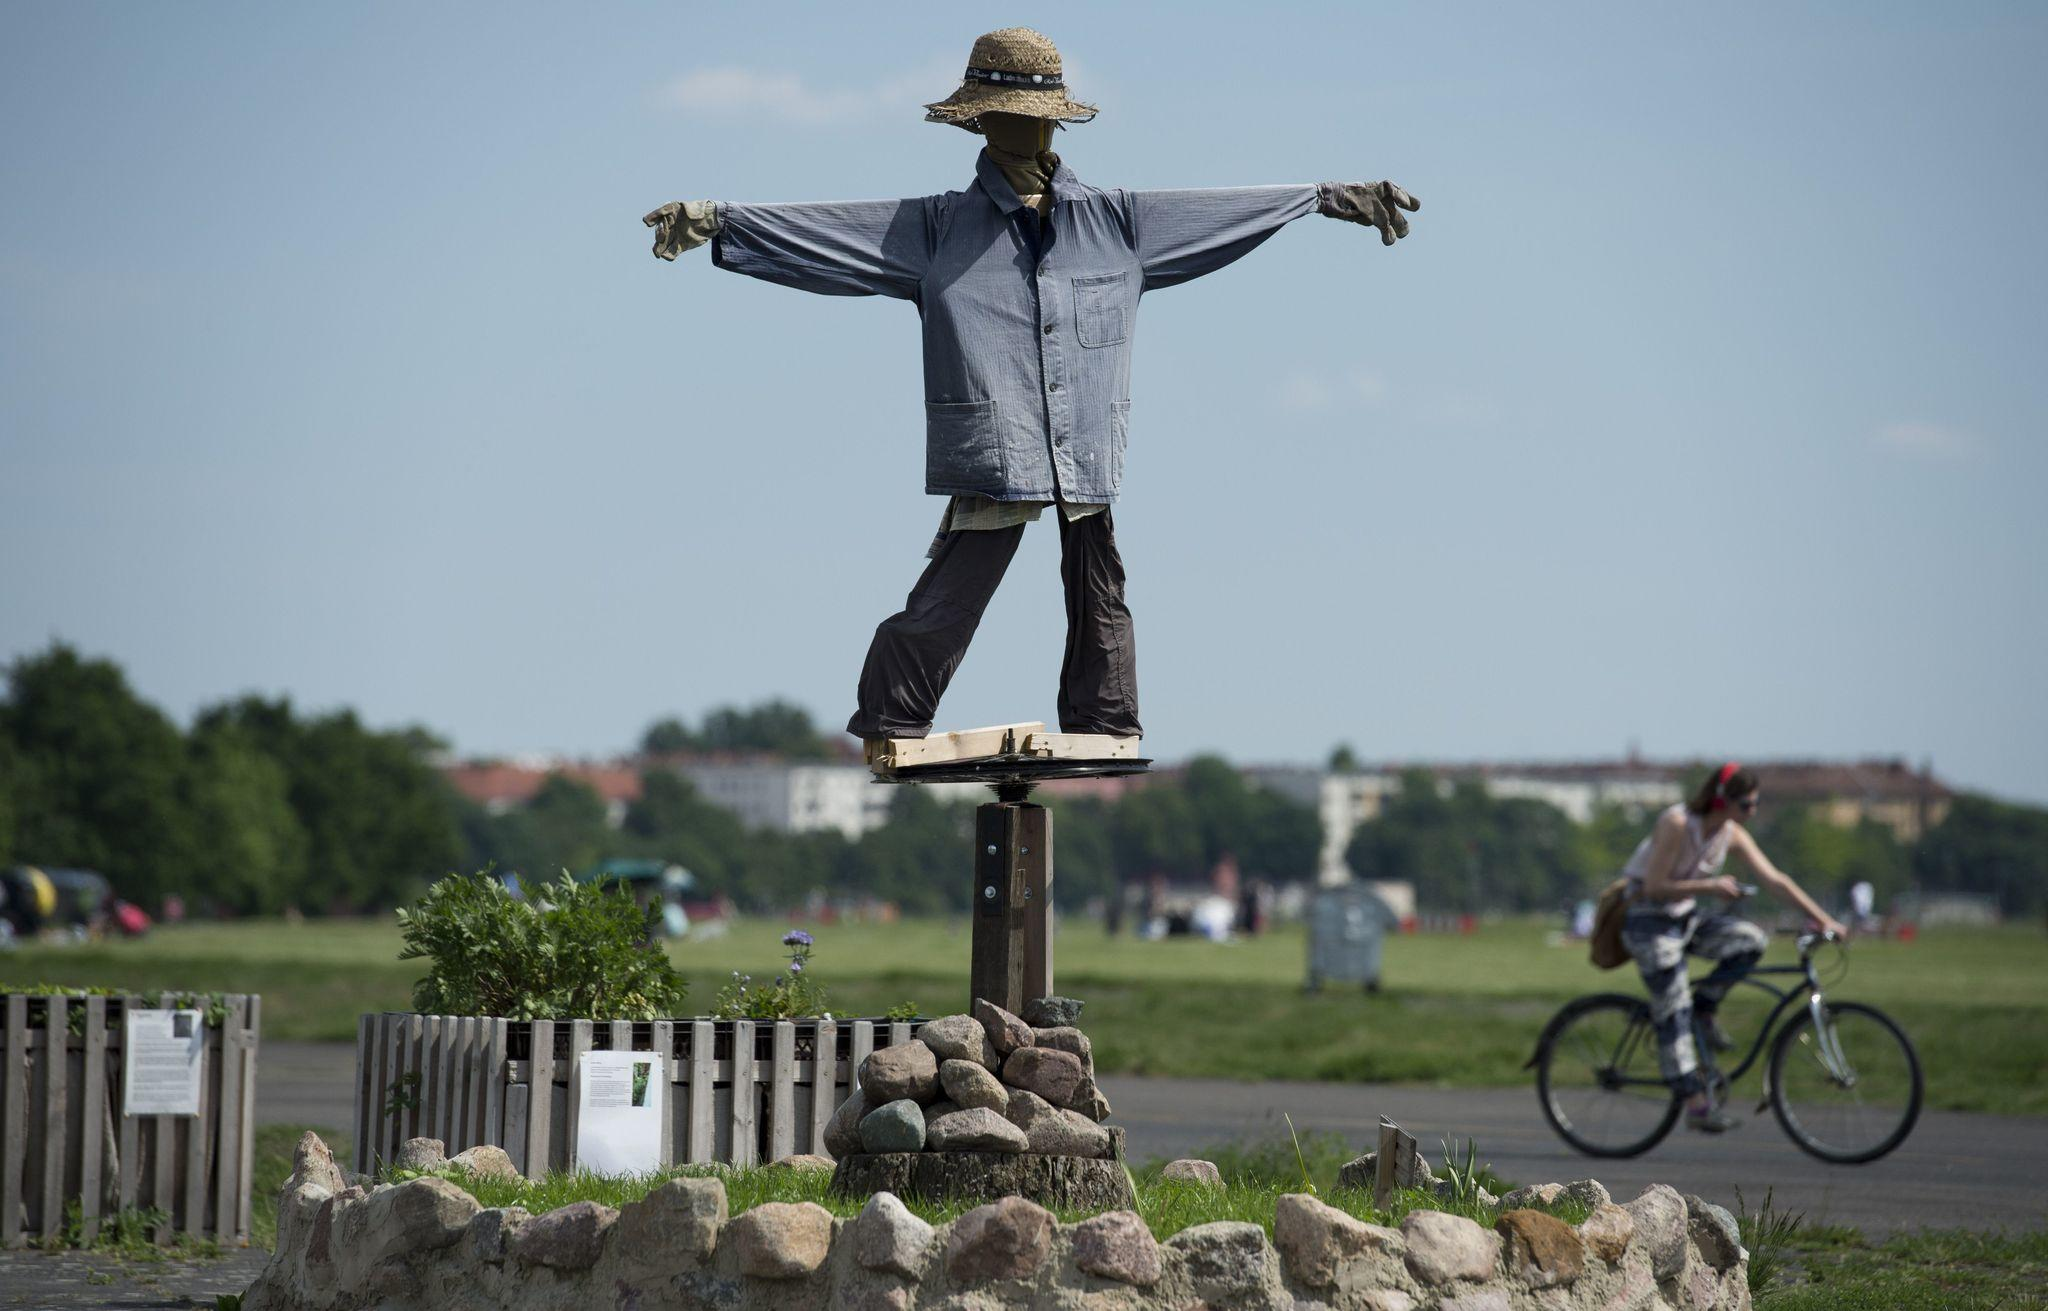 A scarecrow looks over a small garden near the main terminal of Tempelhof airport in Berlin on May 21, 2014.